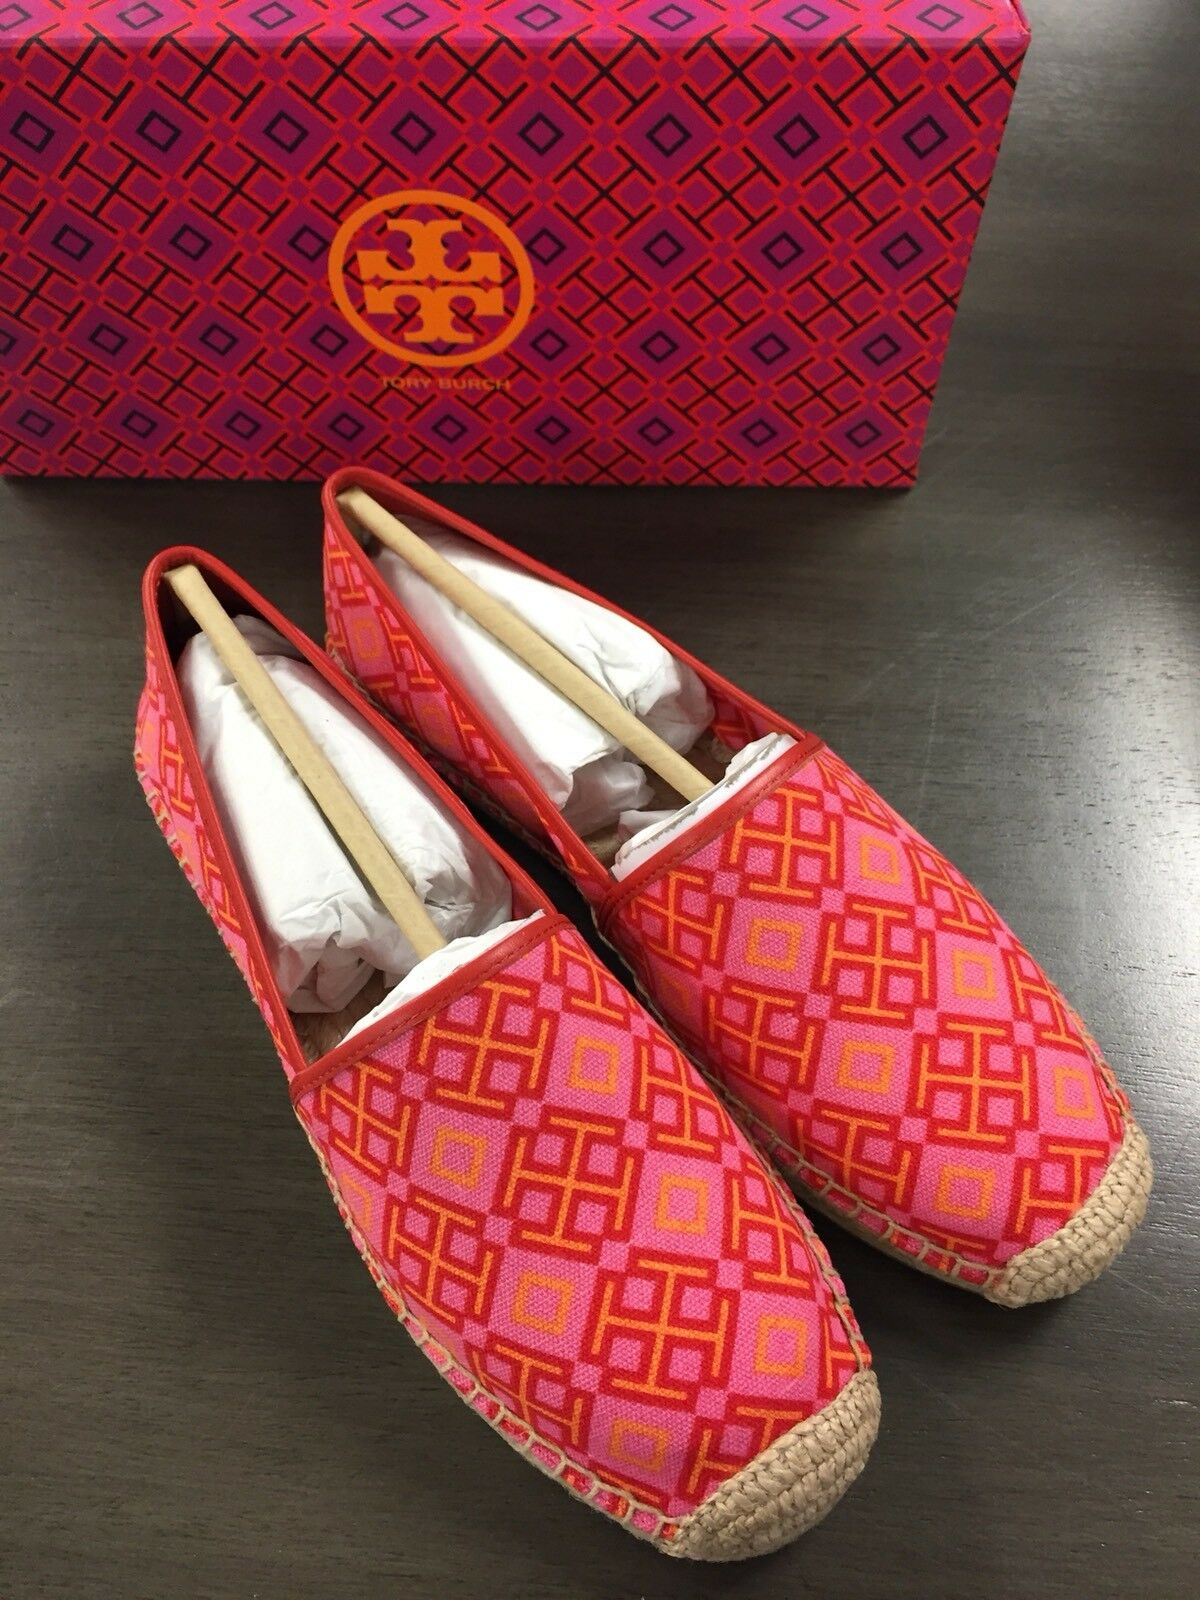 Tory Burch Honeysuckle 4t Print Red Volcano Pink Canvas Espadrille shoes 10.5